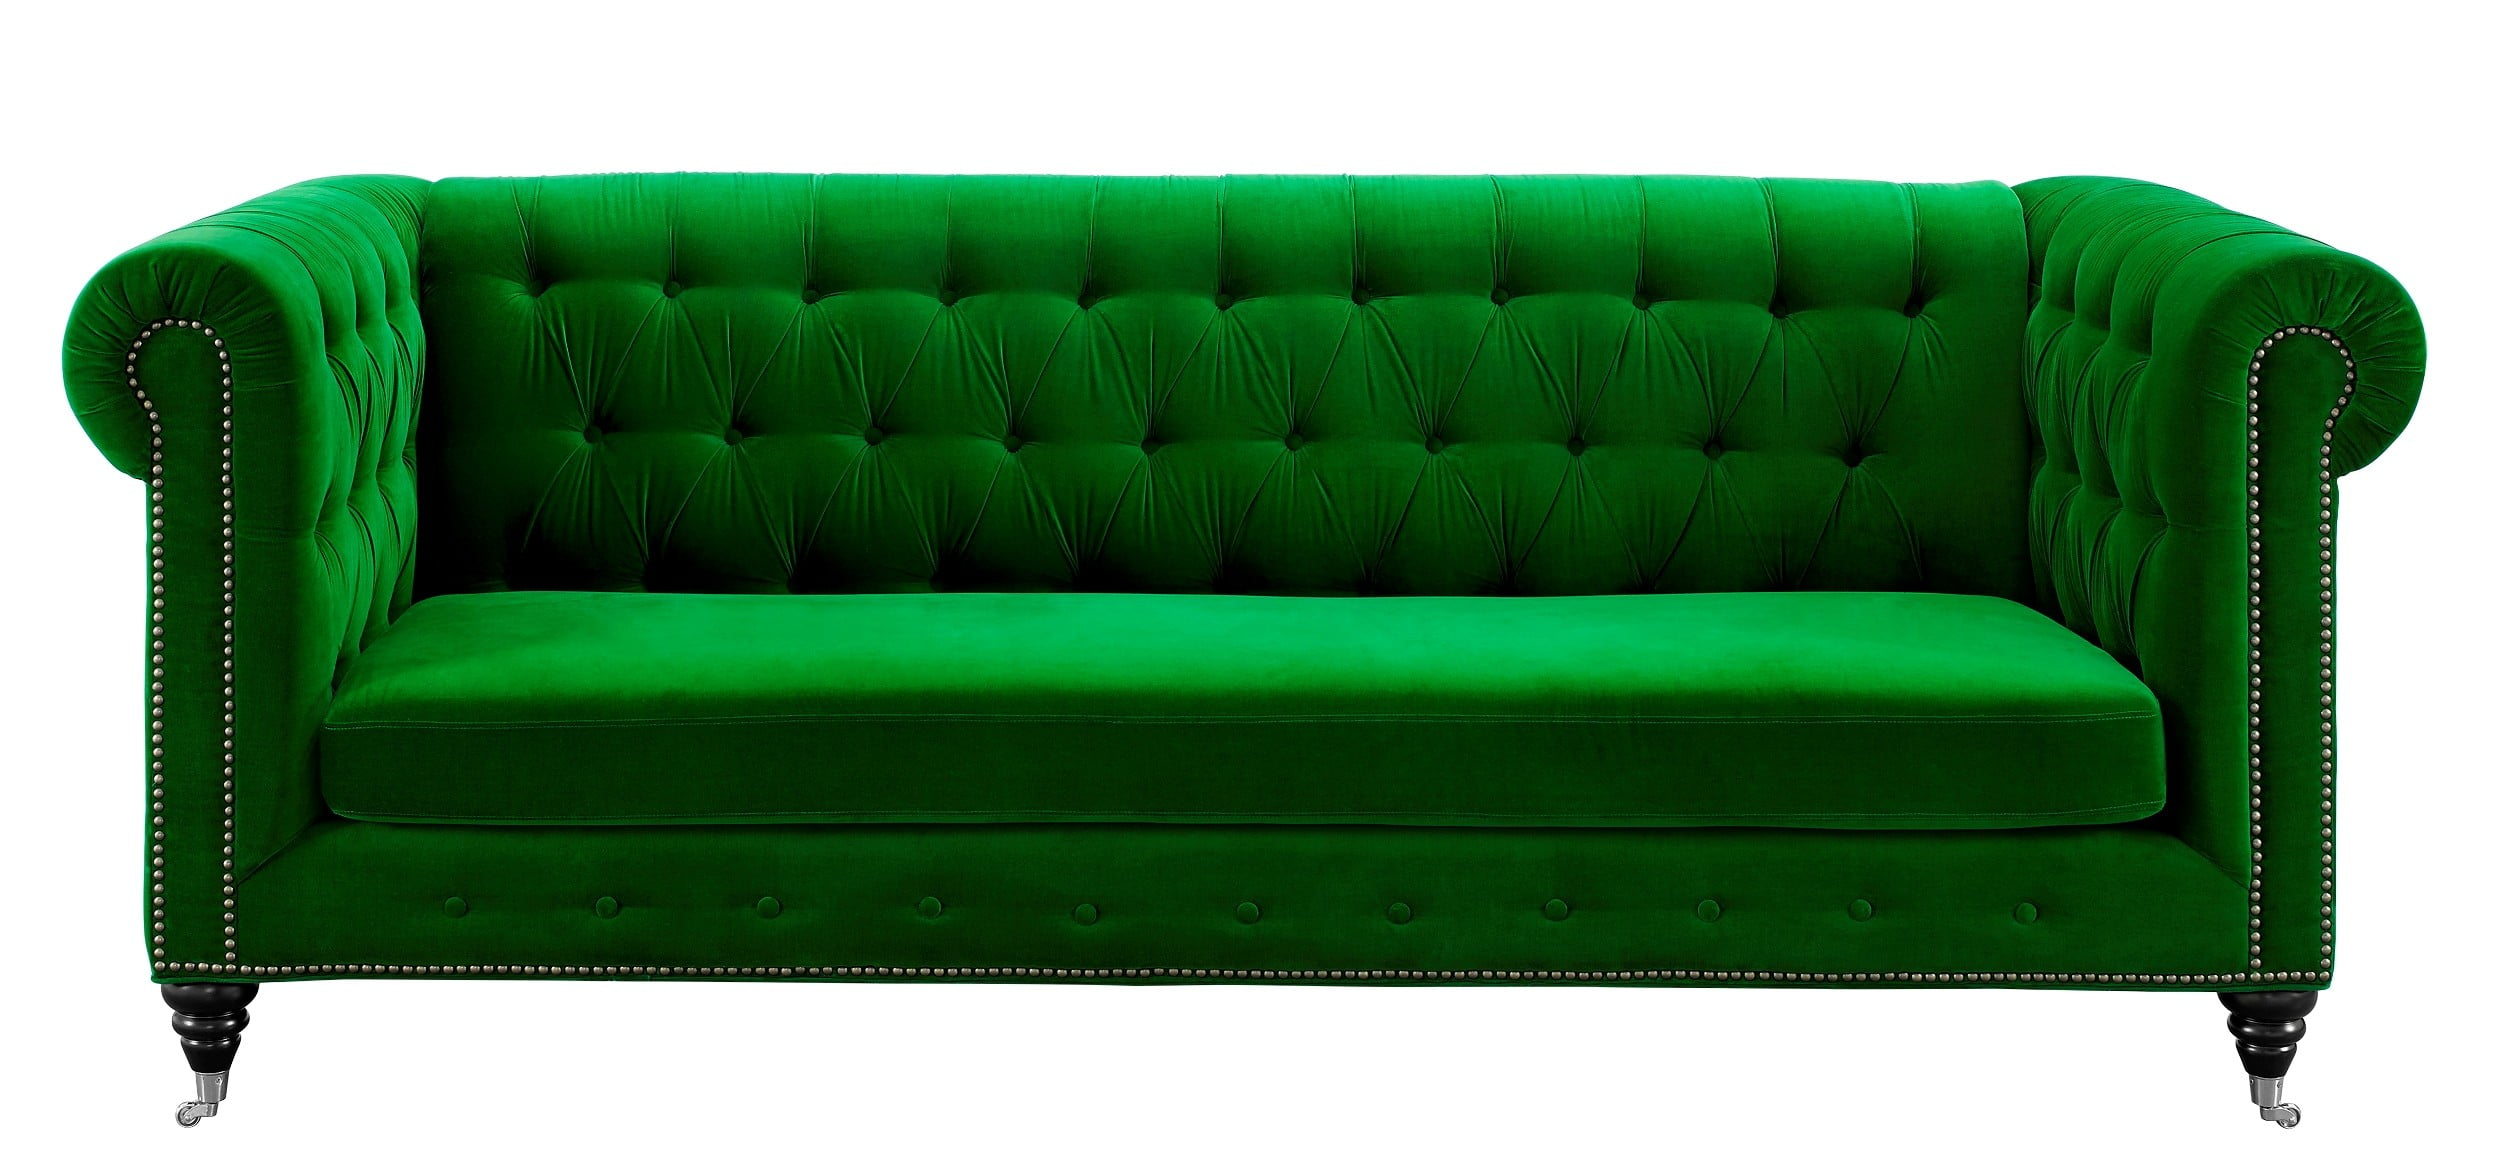 Green Settee Hanny Green Velvet Sofa From Tov S42 Coleman Furniture